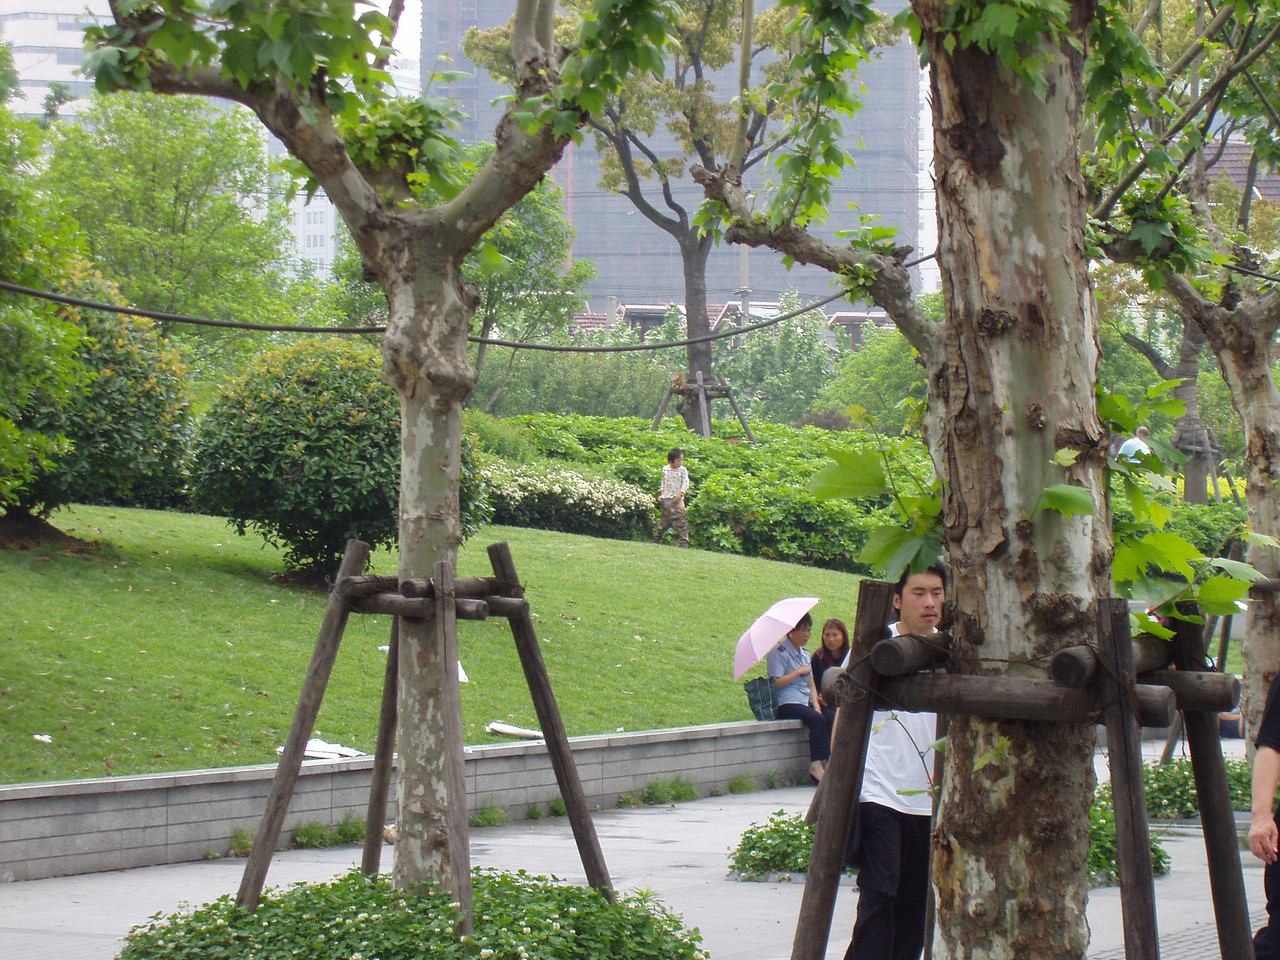 Yup, this would be a kid peeing in the bushes in the middle of downtown Shanghai.